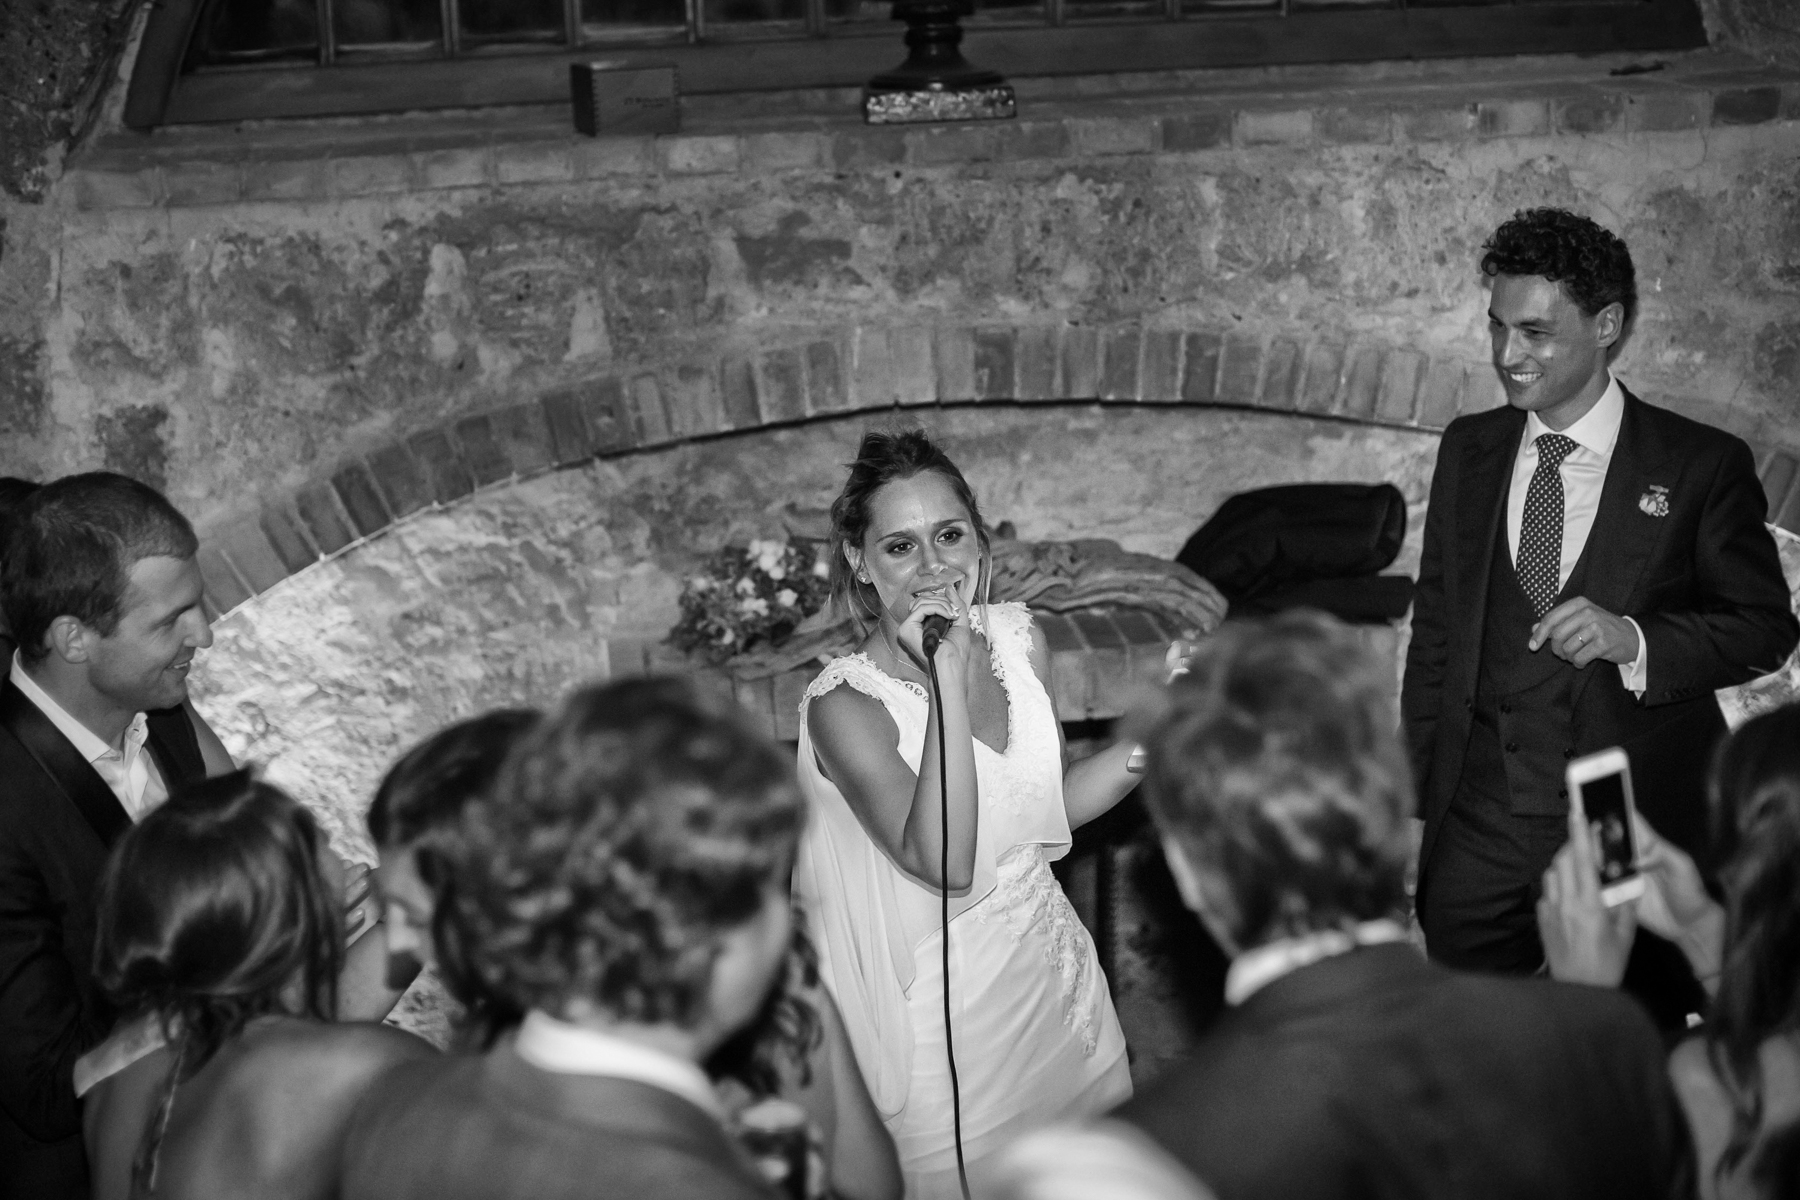 0249-_MG_0130-Modificafotografo-matrimonio-napoli-scattidamore